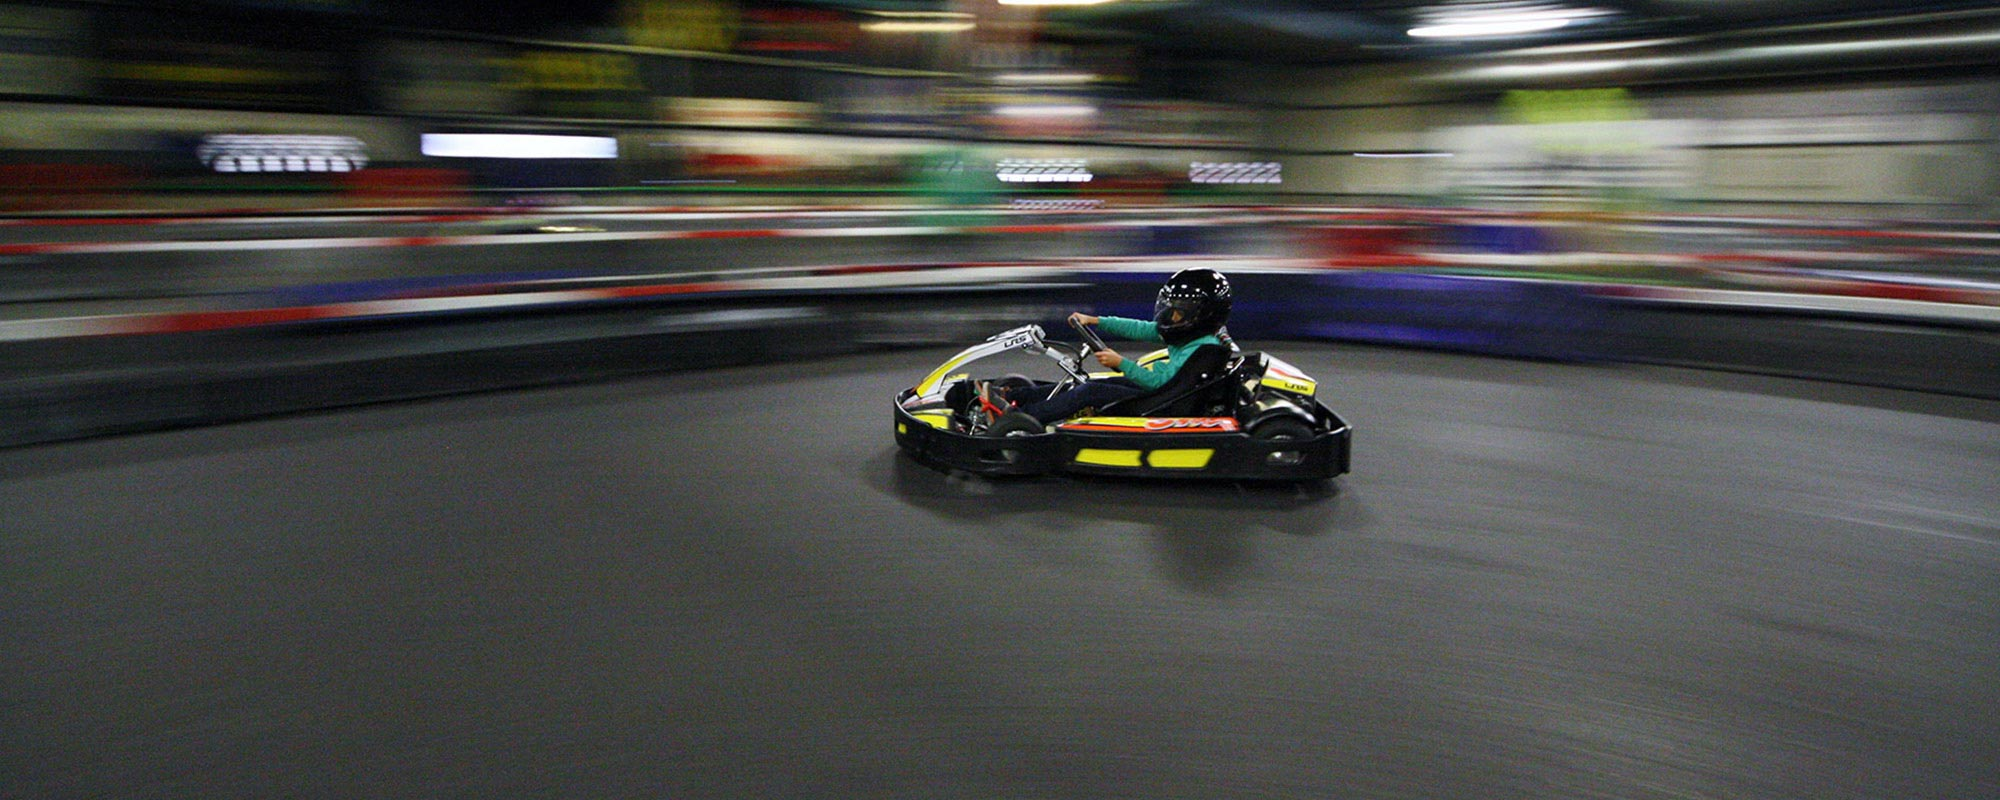 ebafkc-juniorkarting-2000x800-15